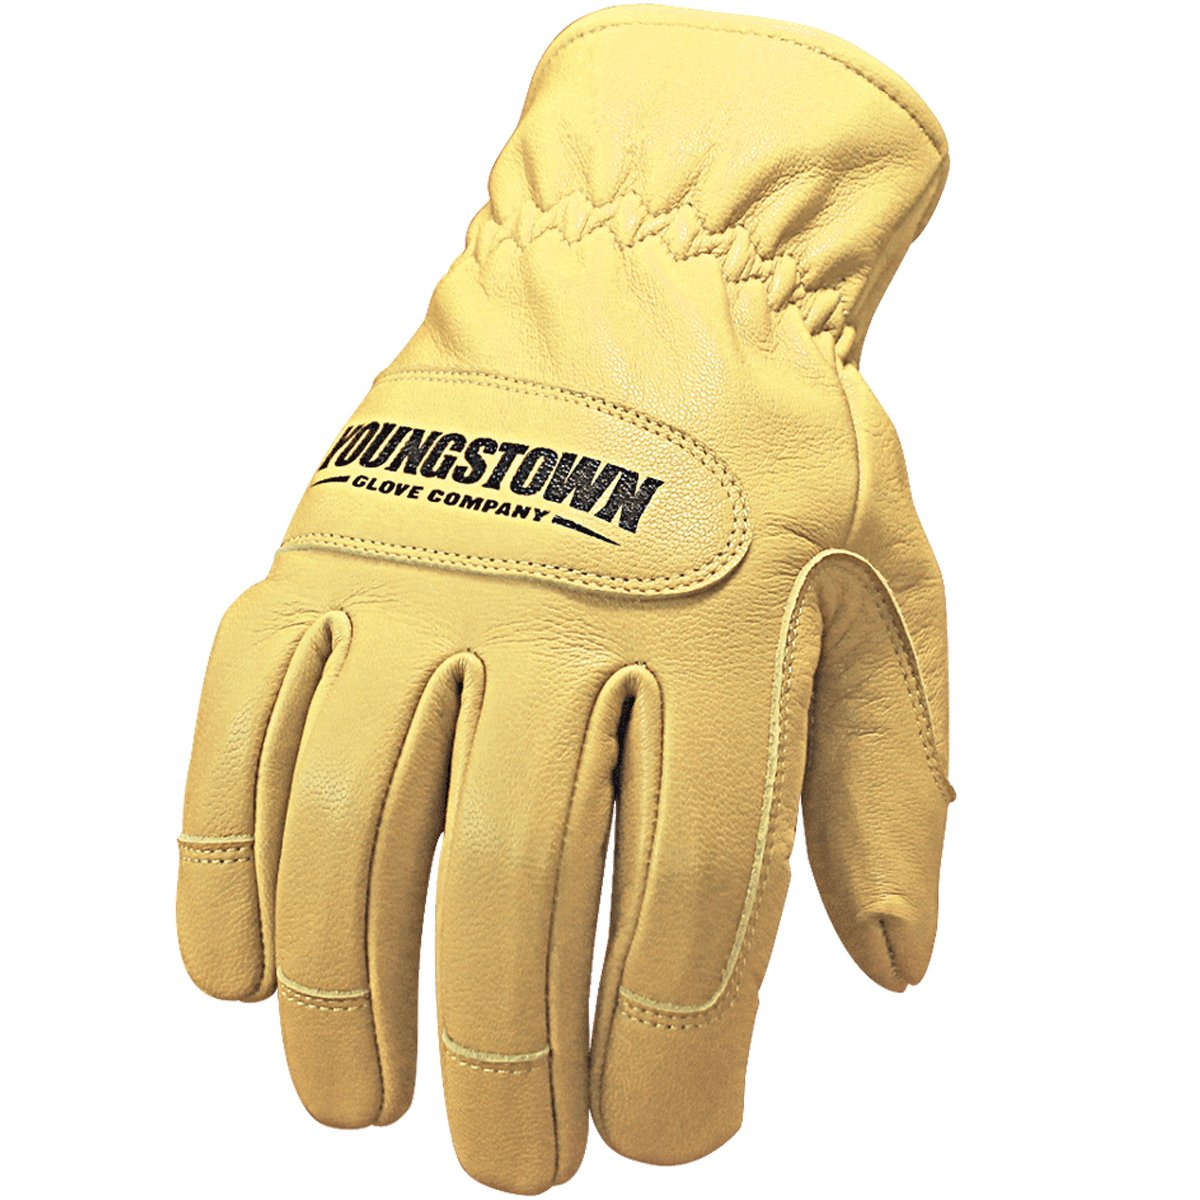 Youngstown Glove 12-3265-60-M Ground Glove Performance Work Gloves, Medium, Tan by Youngstown Glove Company